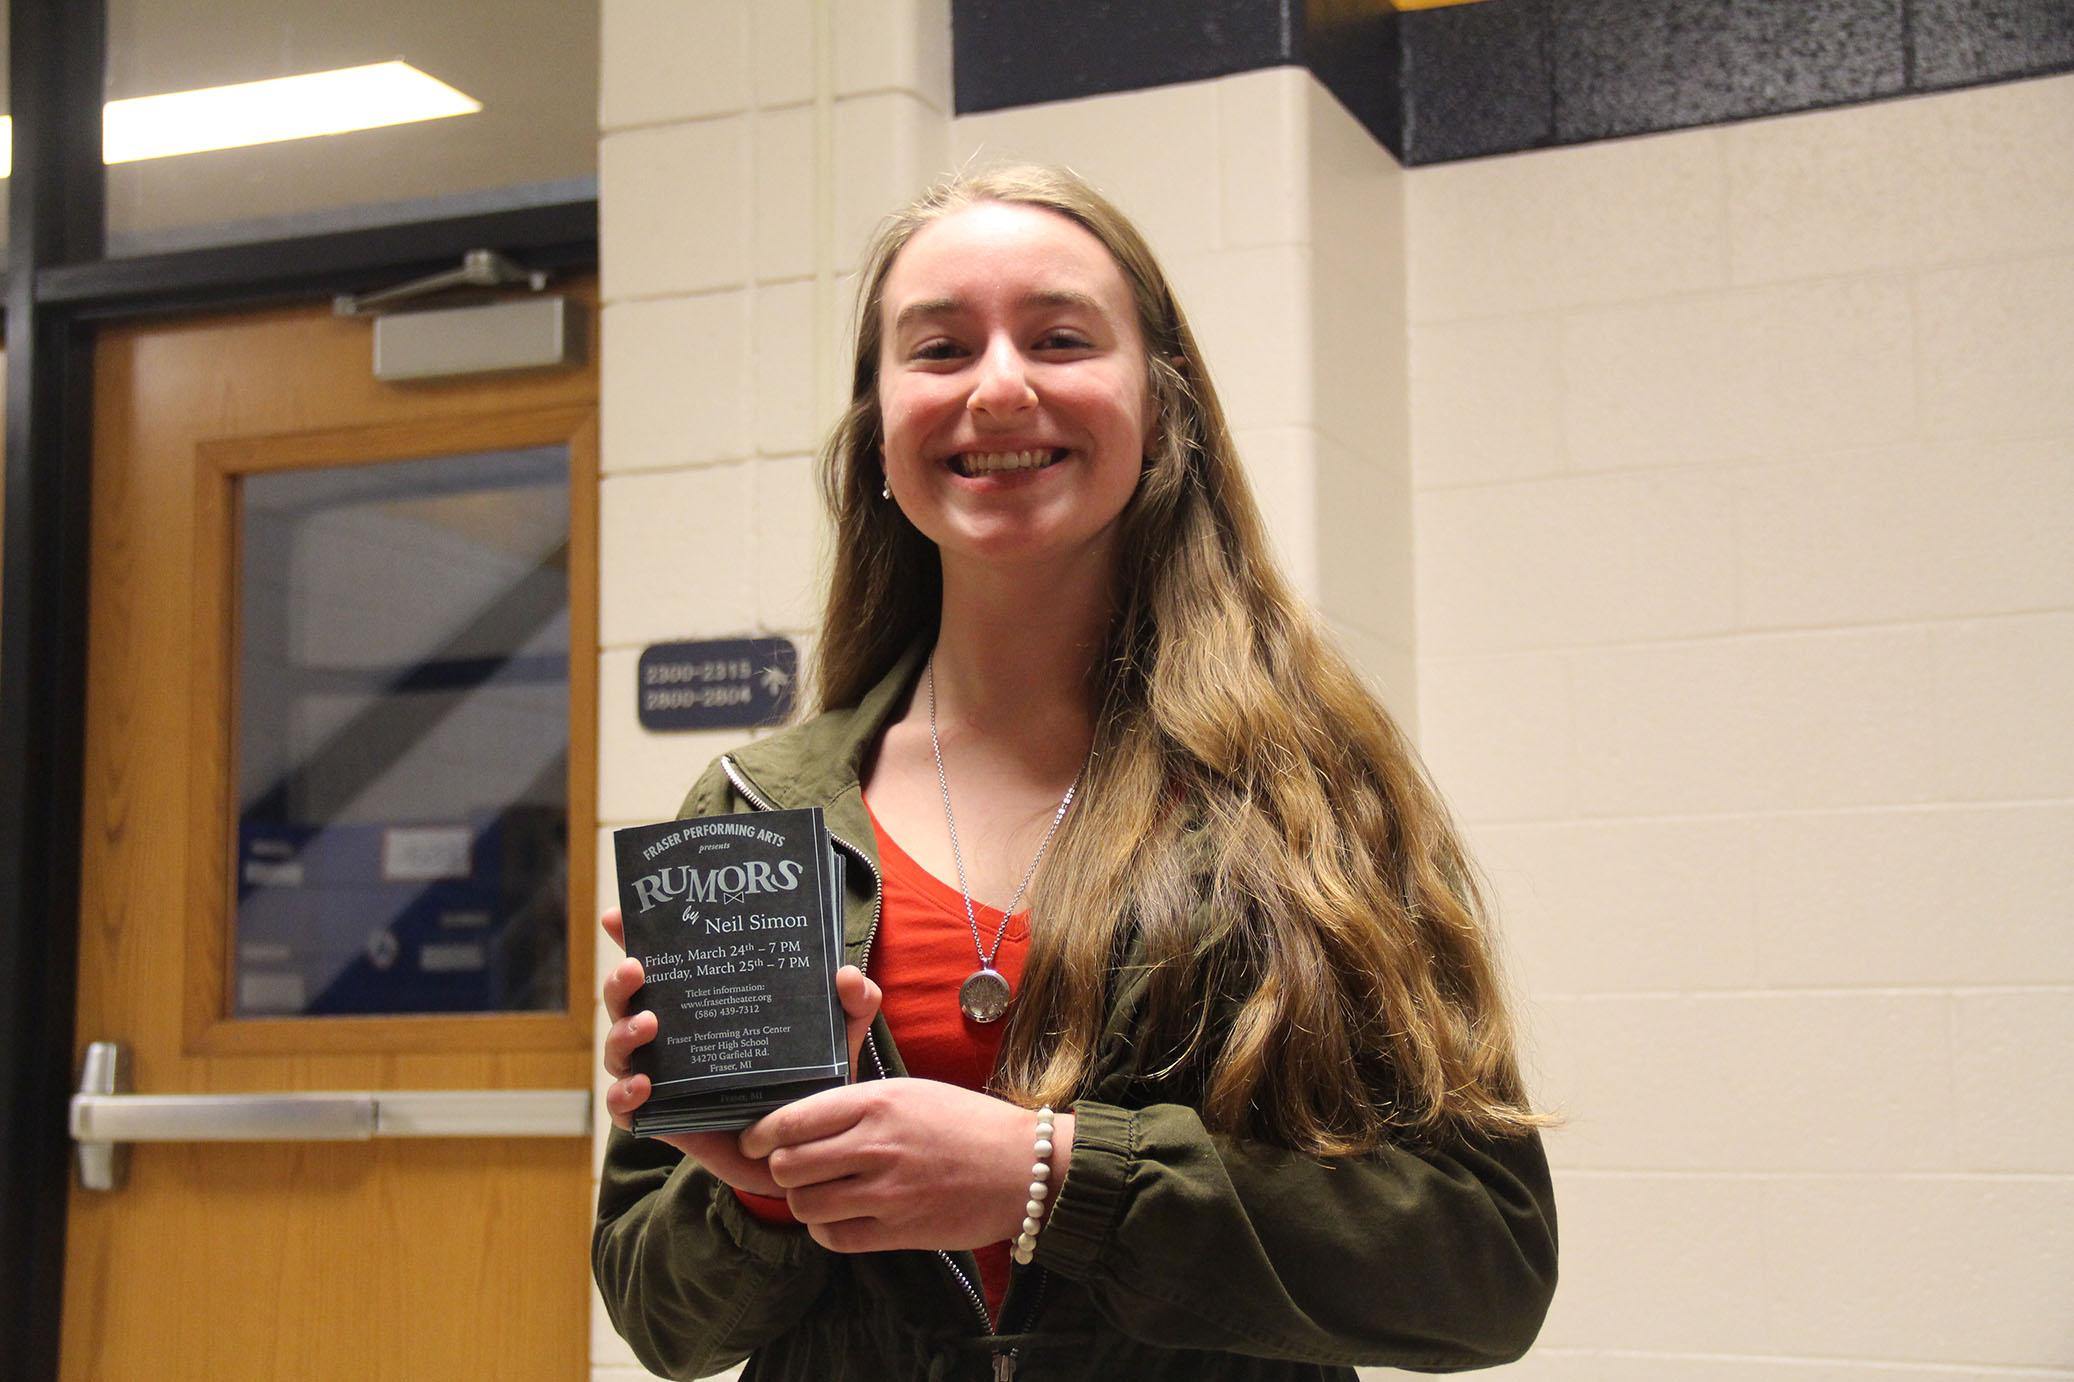 Freshman Brooke Arnold played the character Cris Gorman in the play Rumors and is currently involved in Fraser Singers and Symphony Band.